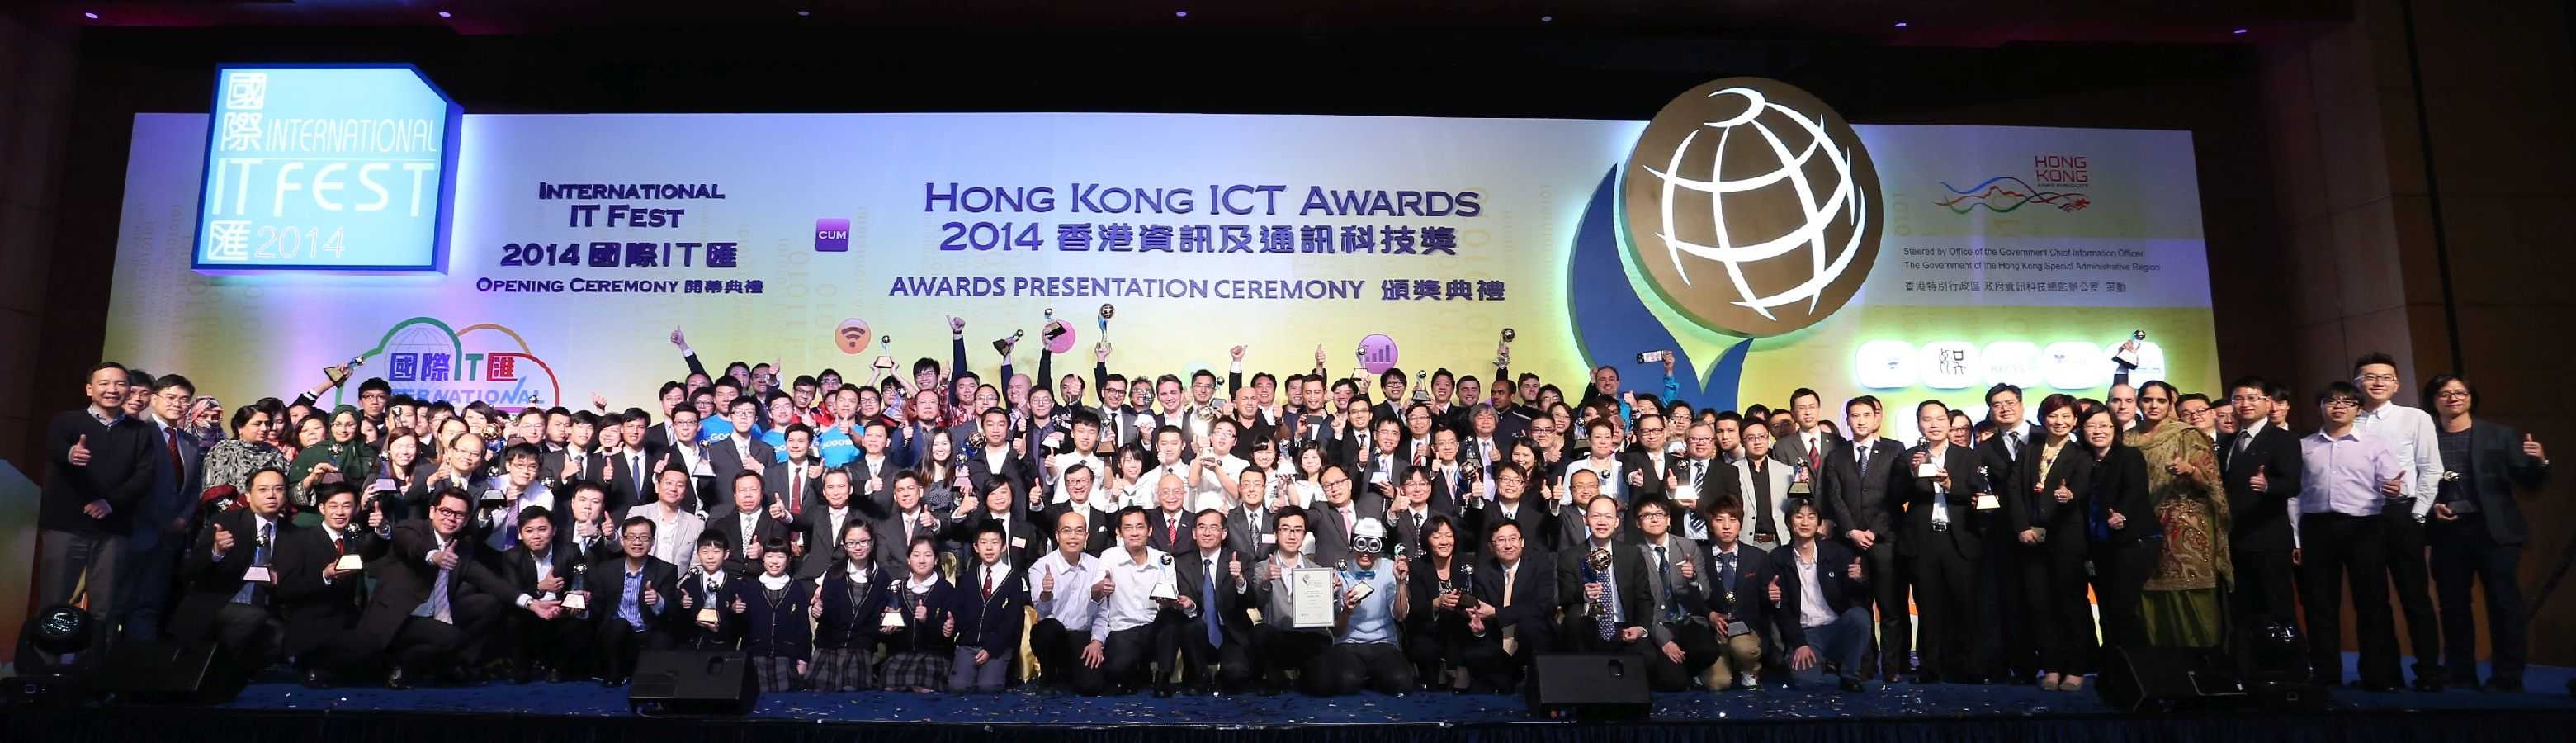 HKICT Awards 2014 Group Photo